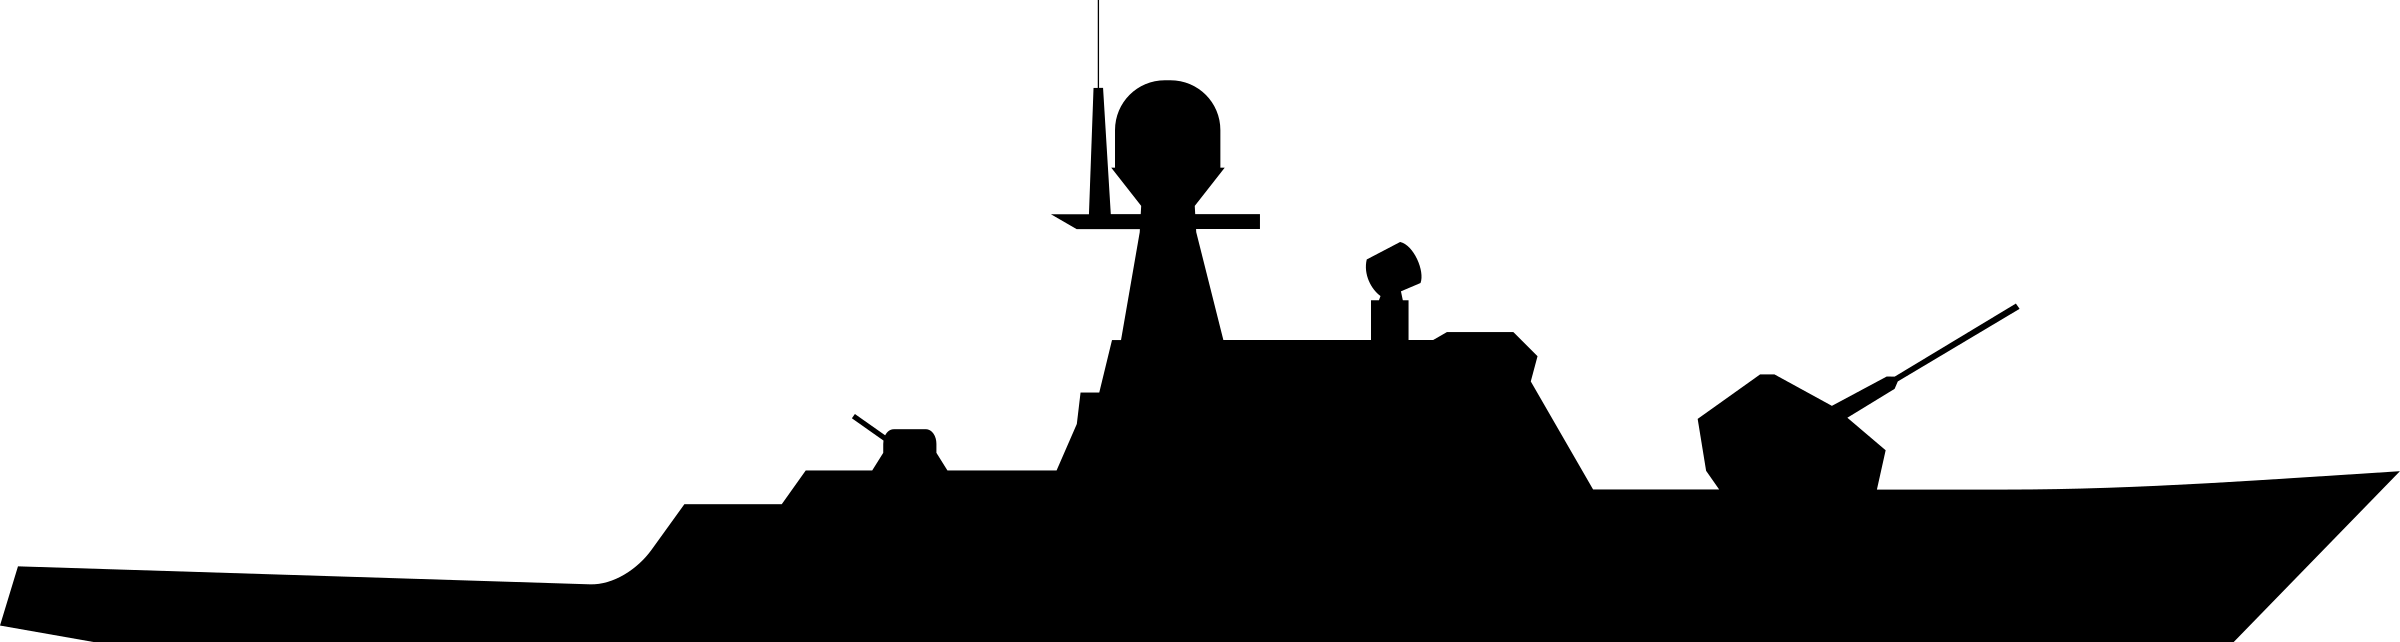 us navy ship silhouette at getdrawings com free for personal use rh getdrawings com us navy clip art and images us navy ship clipart